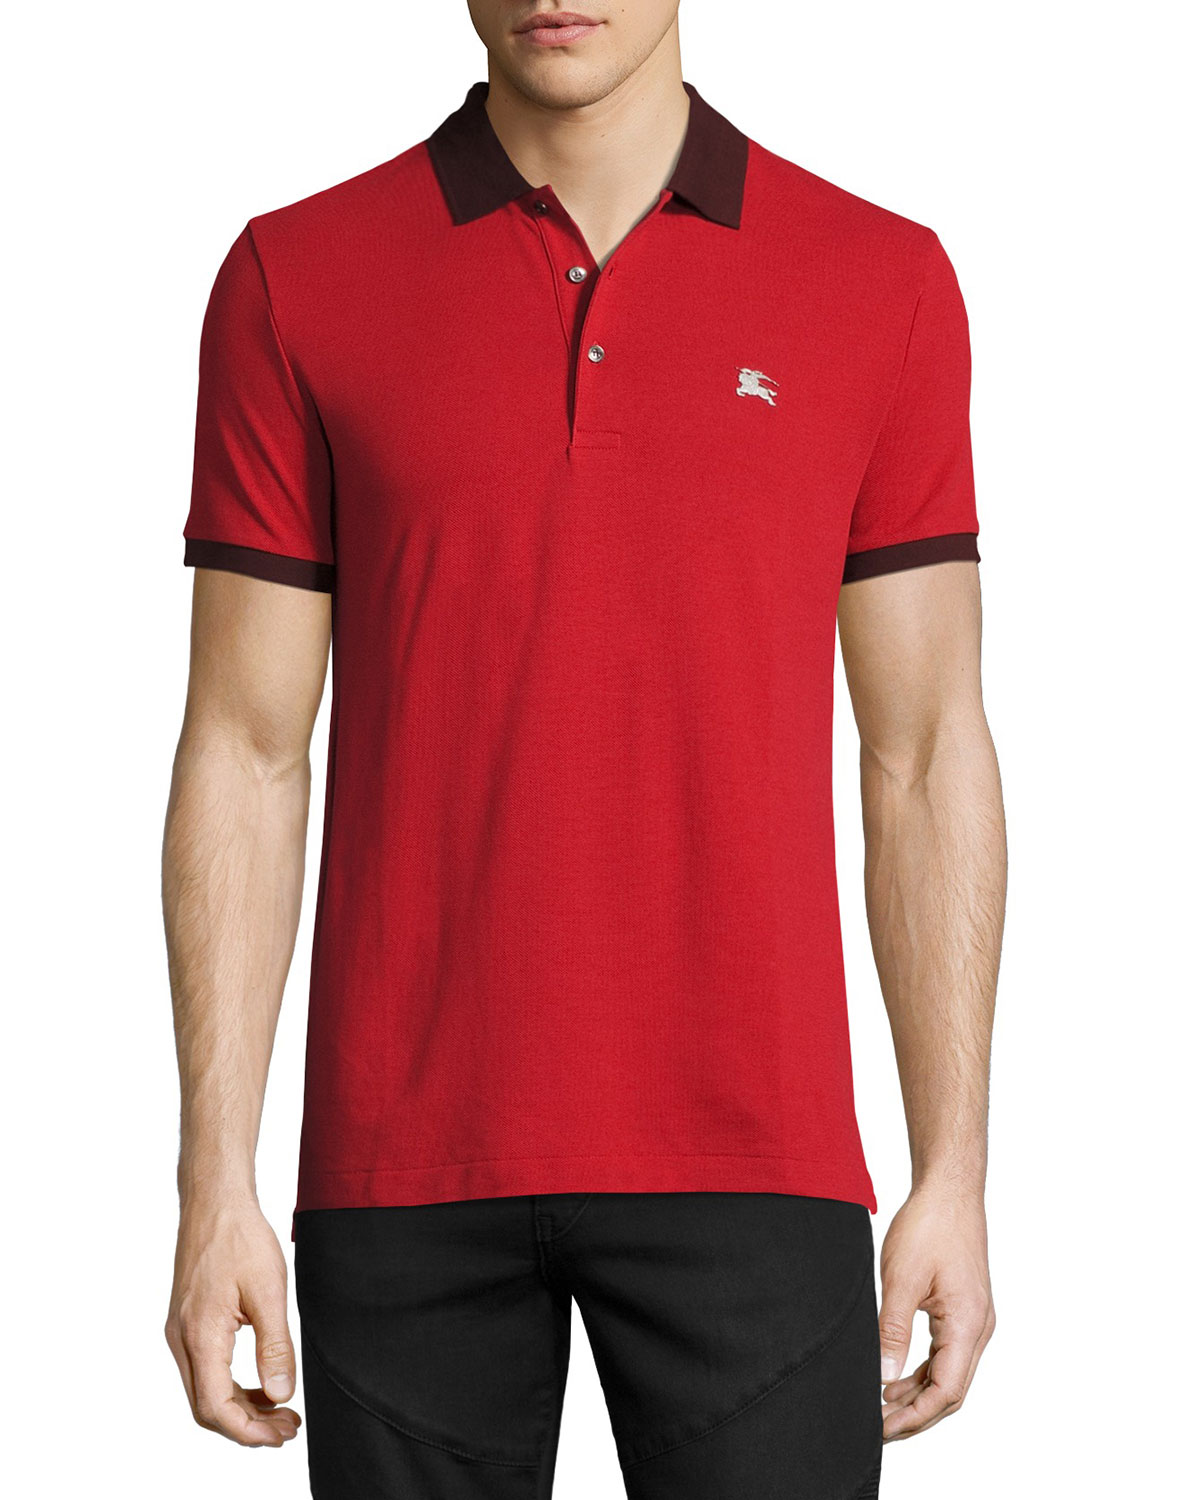 Camberwell Contrast-Trim Cotton Piqué Polo Shirt, Dark Red